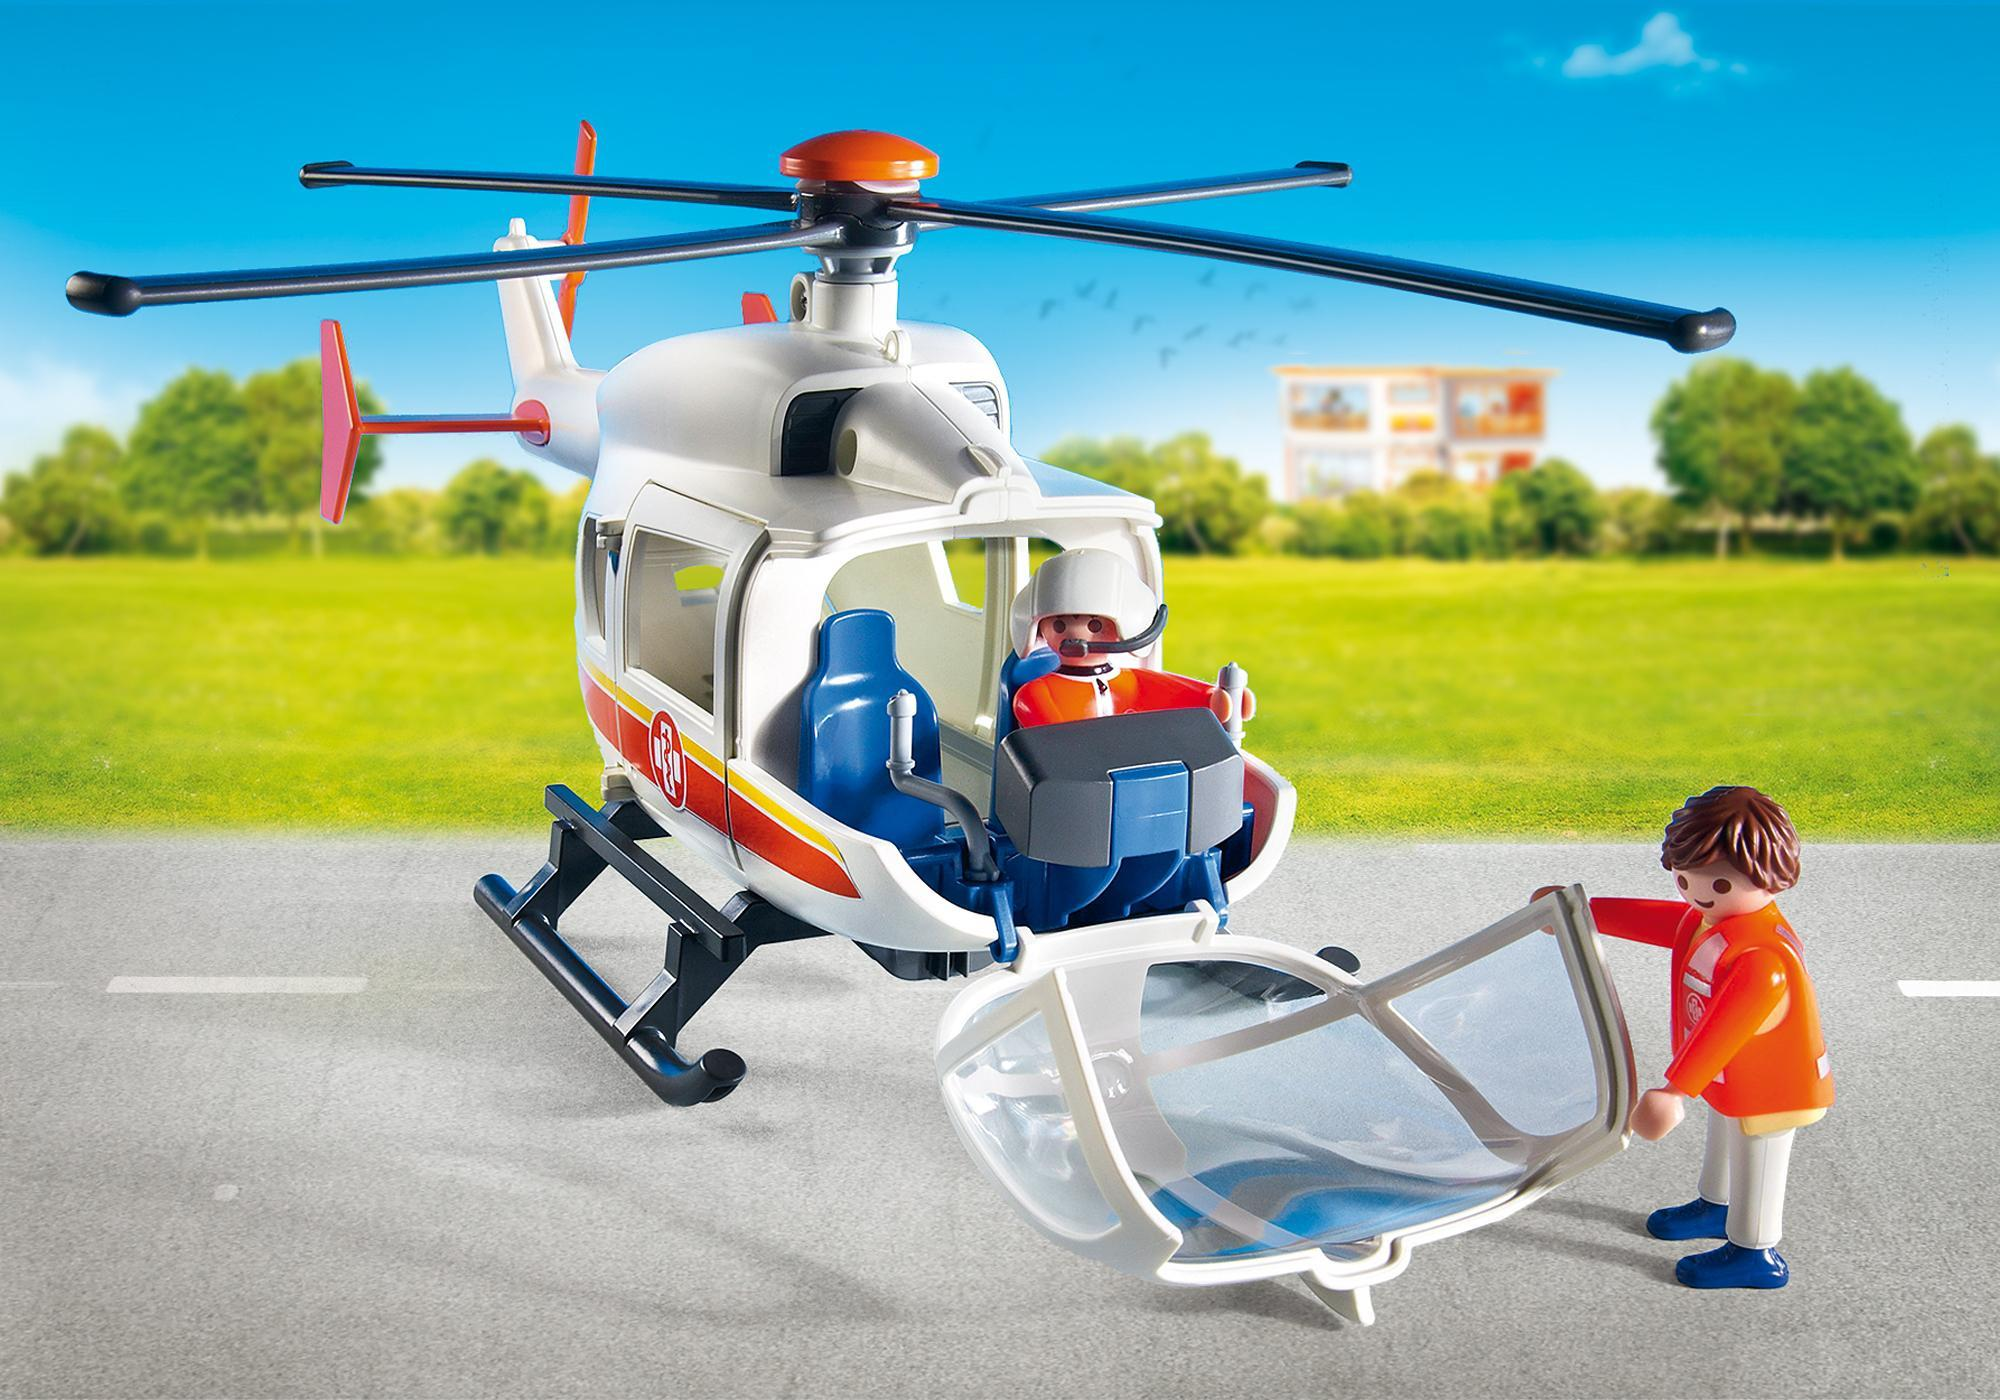 http://media.playmobil.com/i/playmobil/6686_product_extra1/Emergency Medical Helicopter